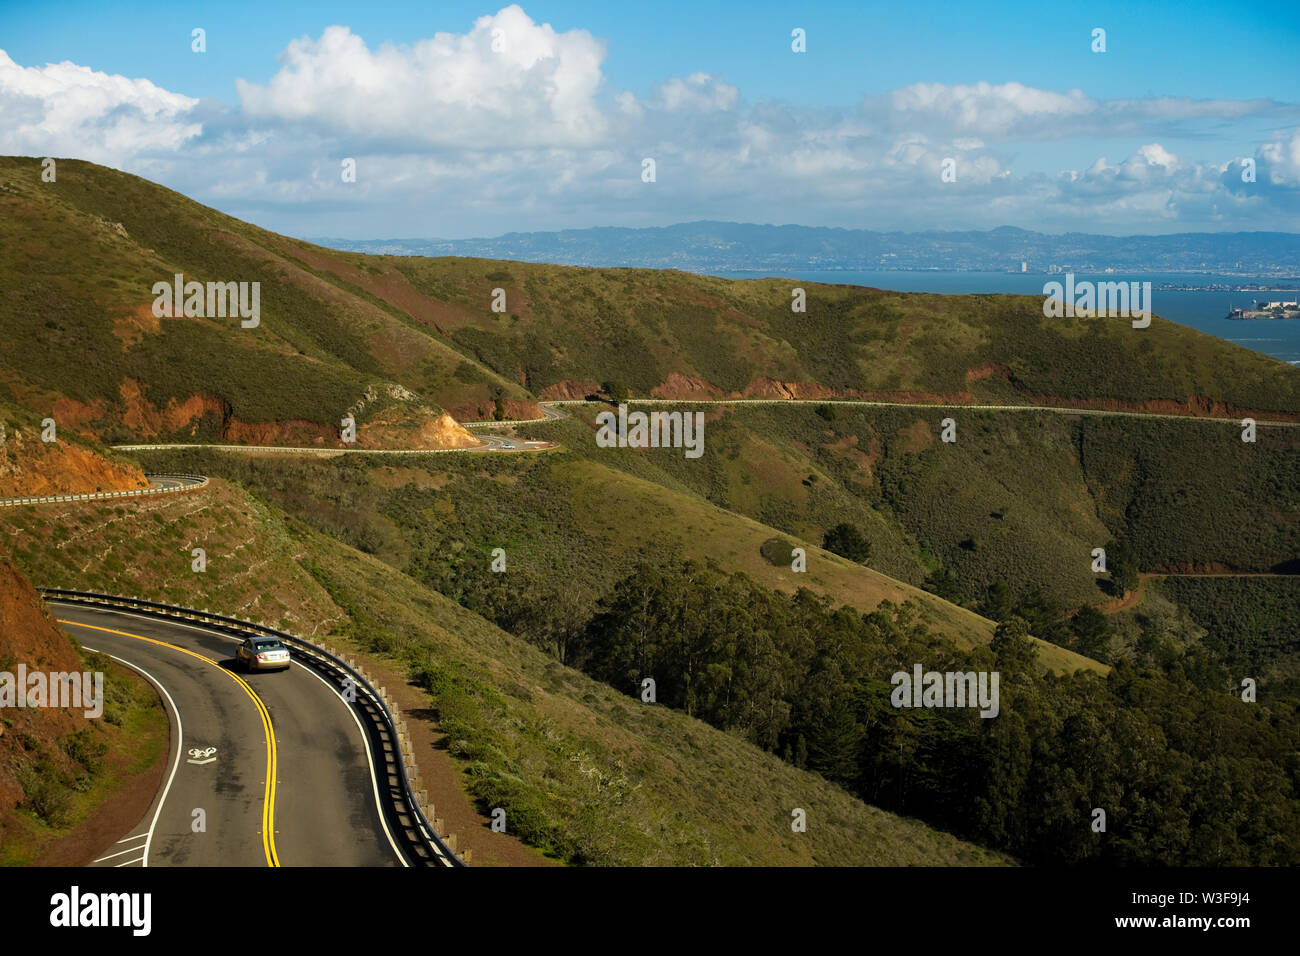 Car travelling on a winding road through a rural landscape. - Stock Image